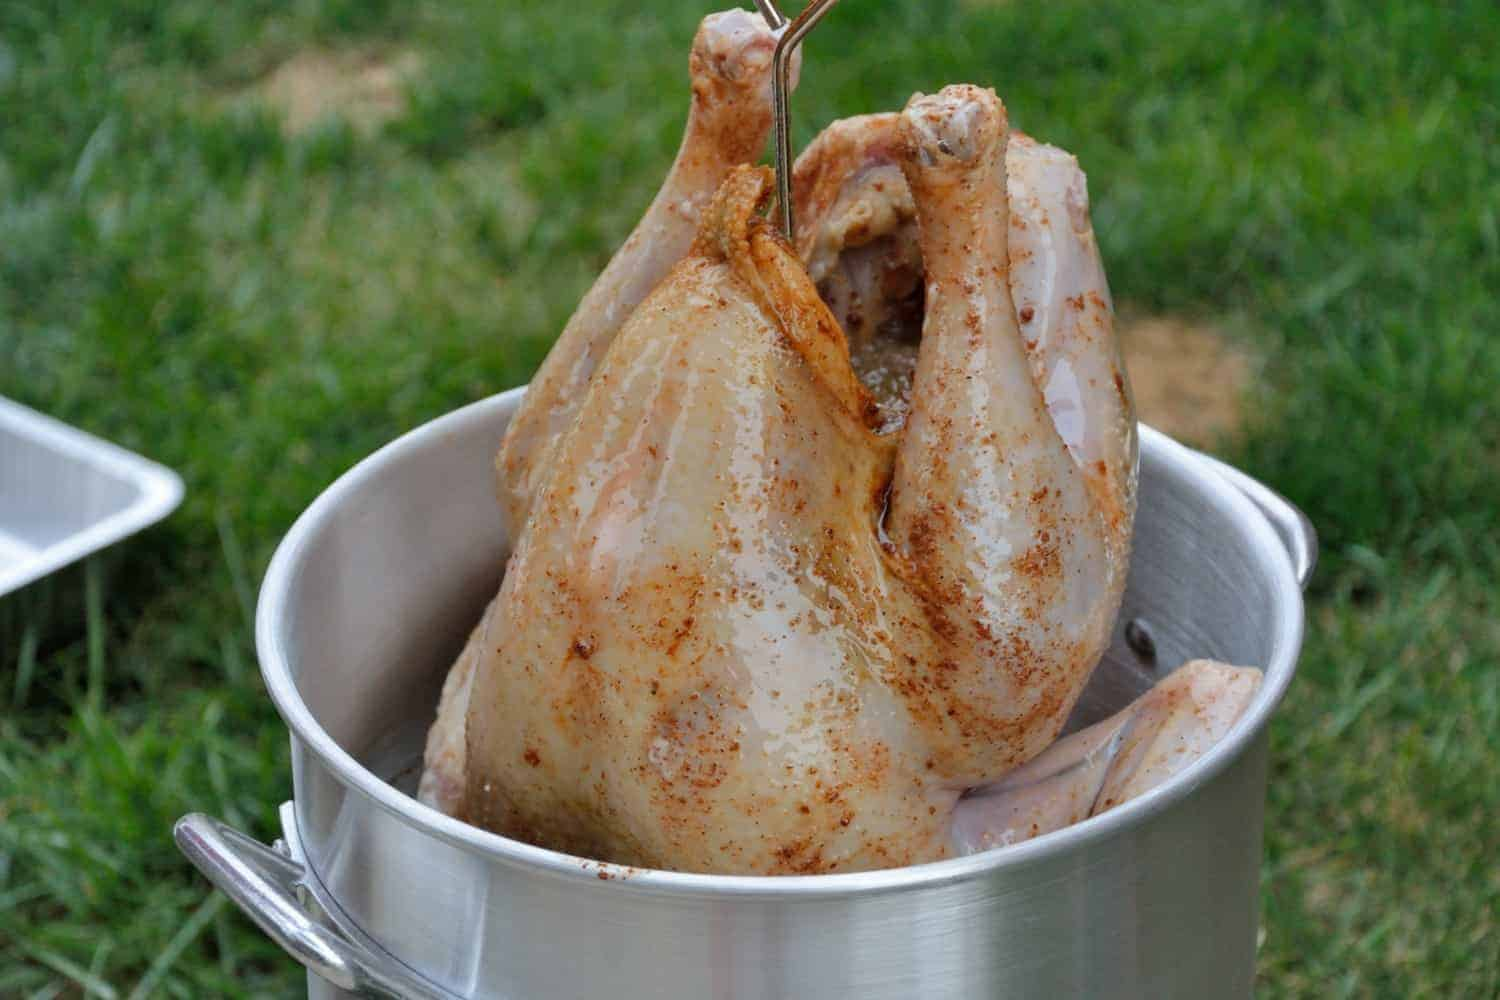 How to Fry a Turkey Step-by-Step Fried Turkey Recipe - Have you ever wondered how to fry a turkey? Here are easy step-by-step instructions that can be used with any fried turkey recipe.  #howtofryaturkey